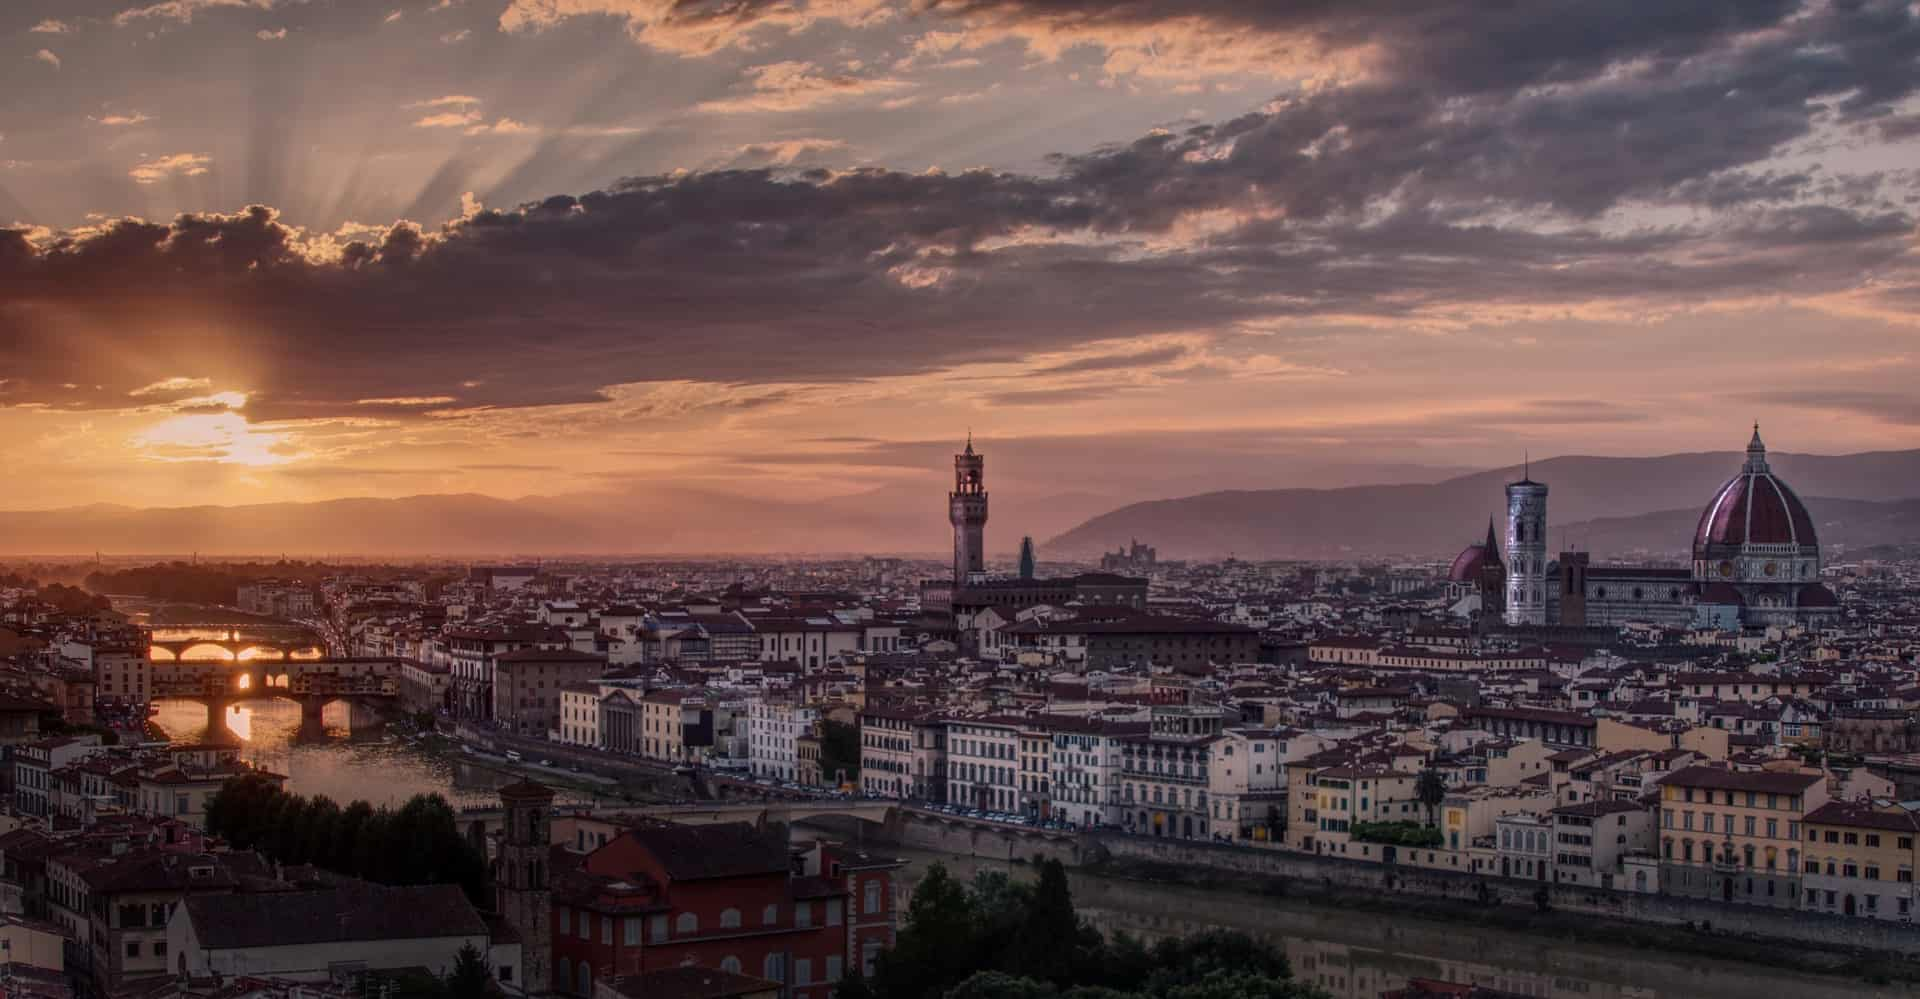 35 Fun Facts About Florence You Probably Didn't Know